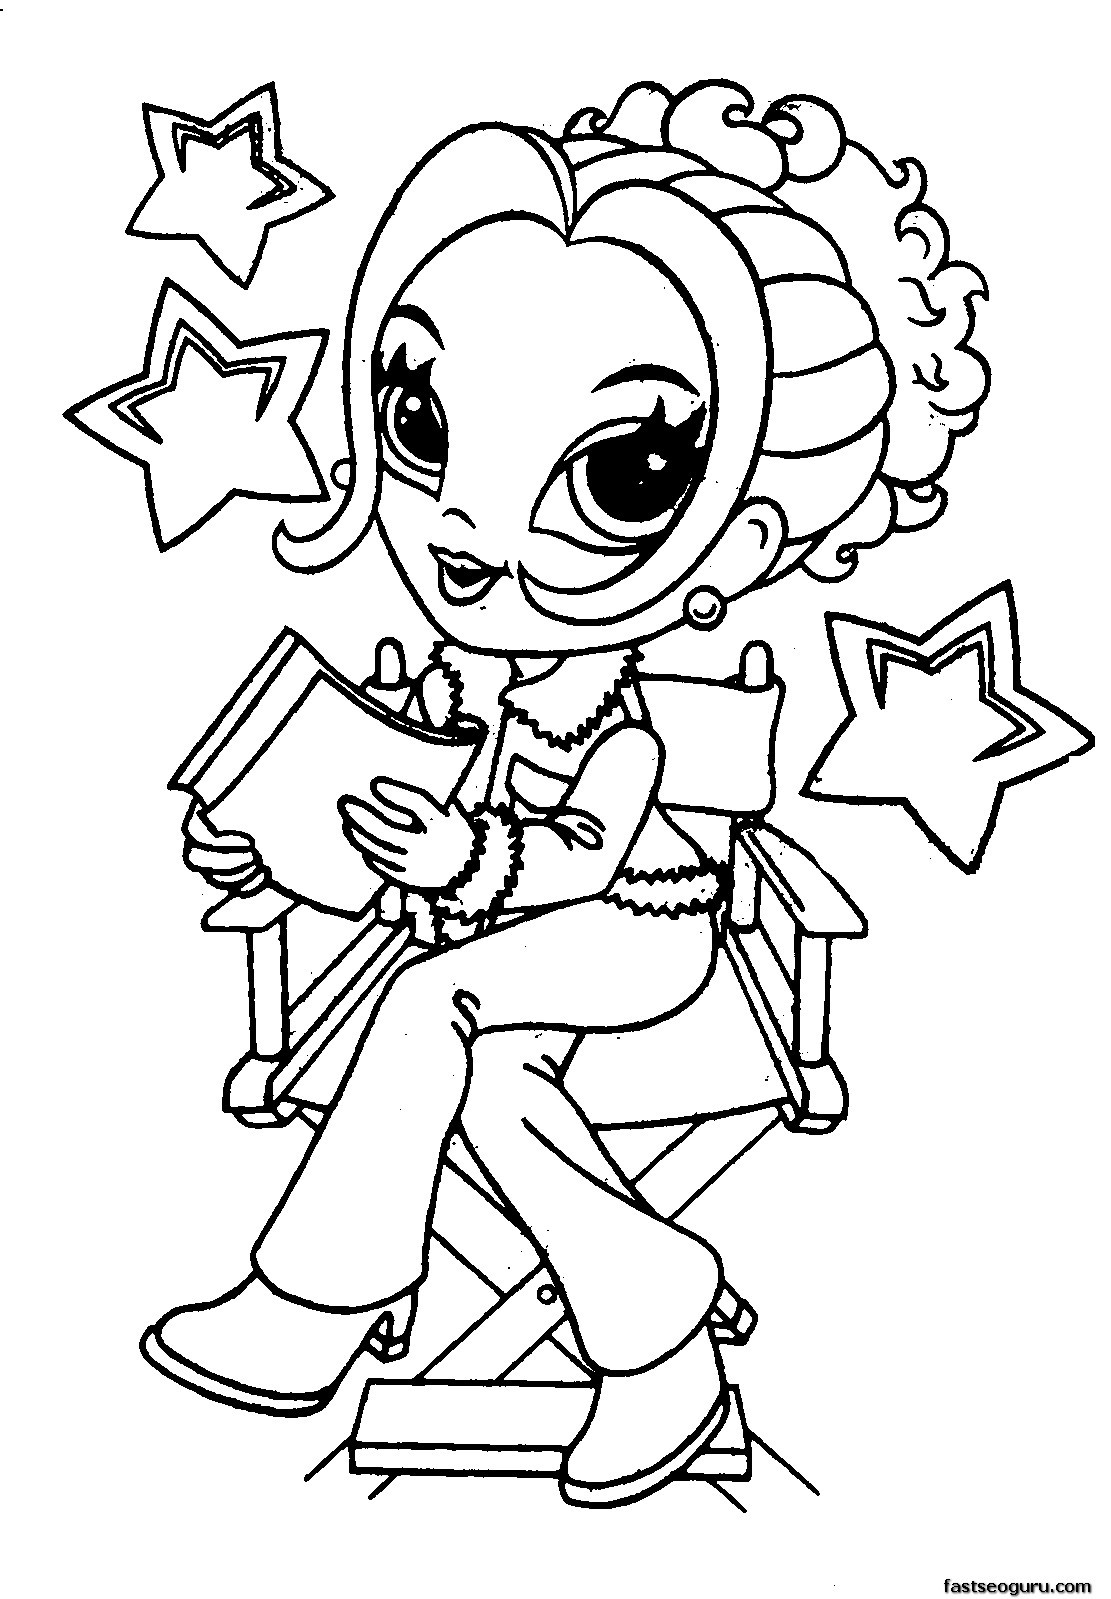 Best ideas about Printable Coloring Sheets For Girls . Save or Pin coloring pages for girls 10 and up Now.